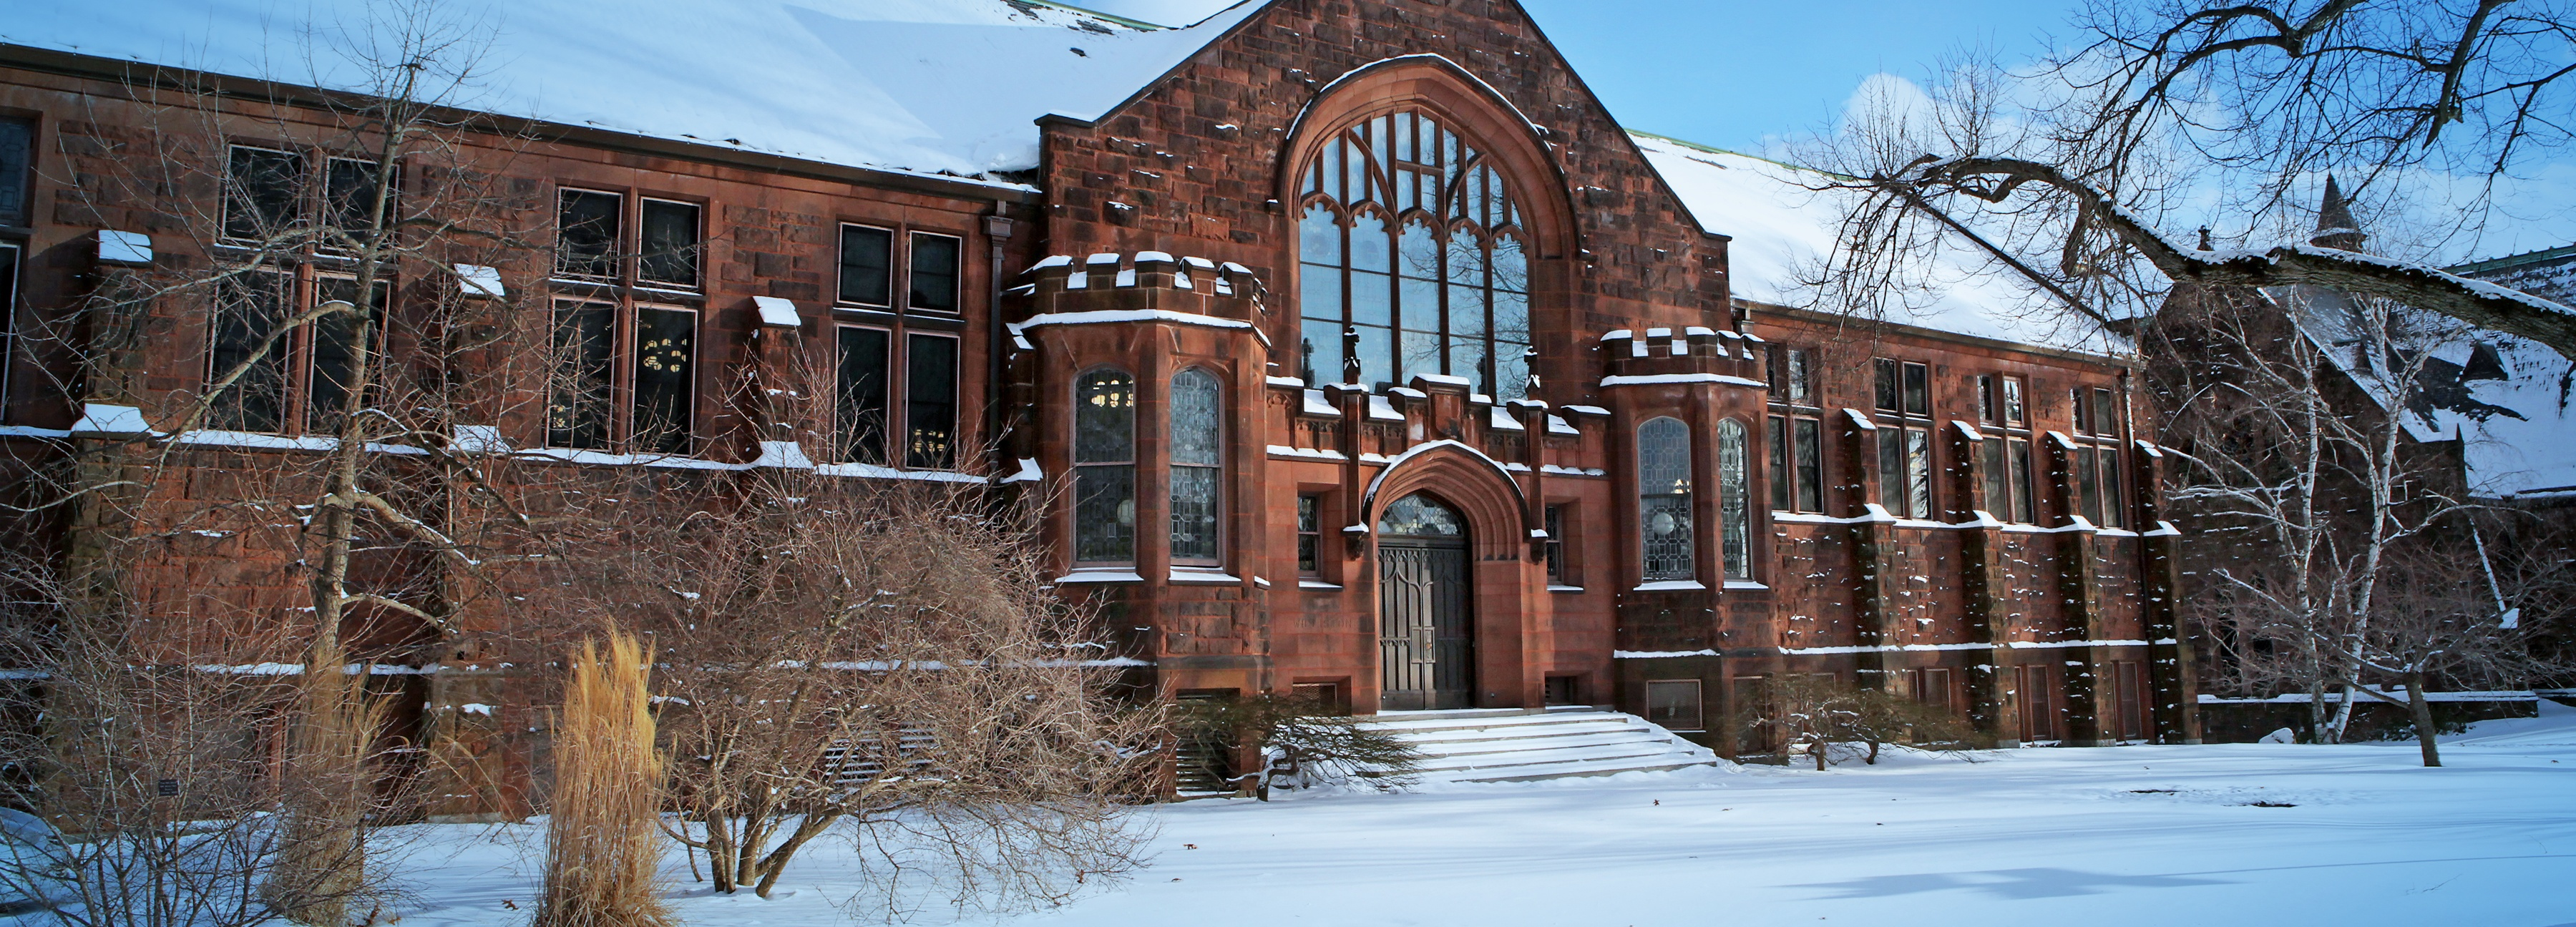 Williston Library in the snow